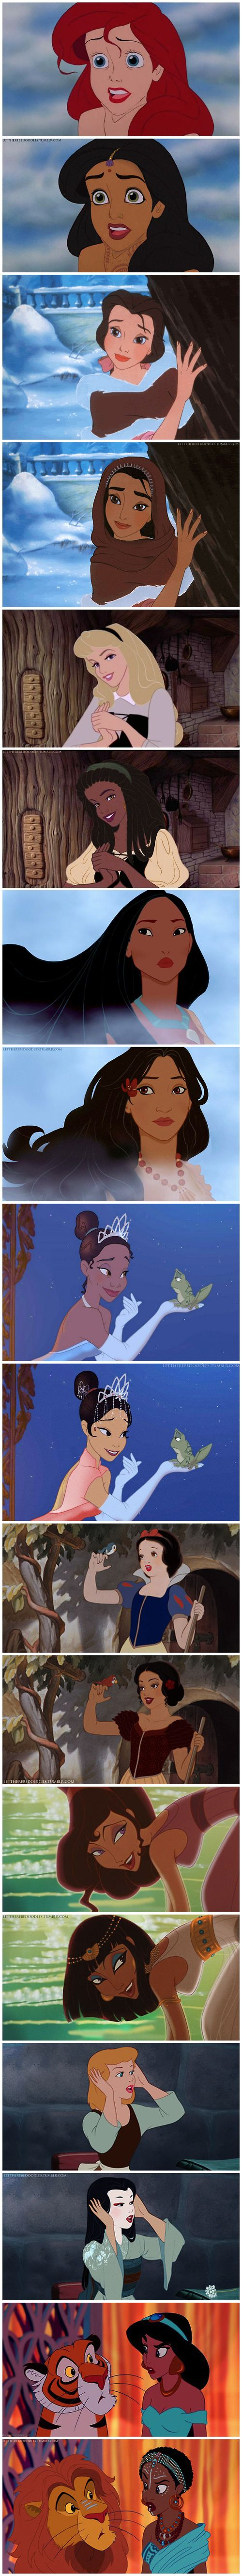 Disney princess diversity!